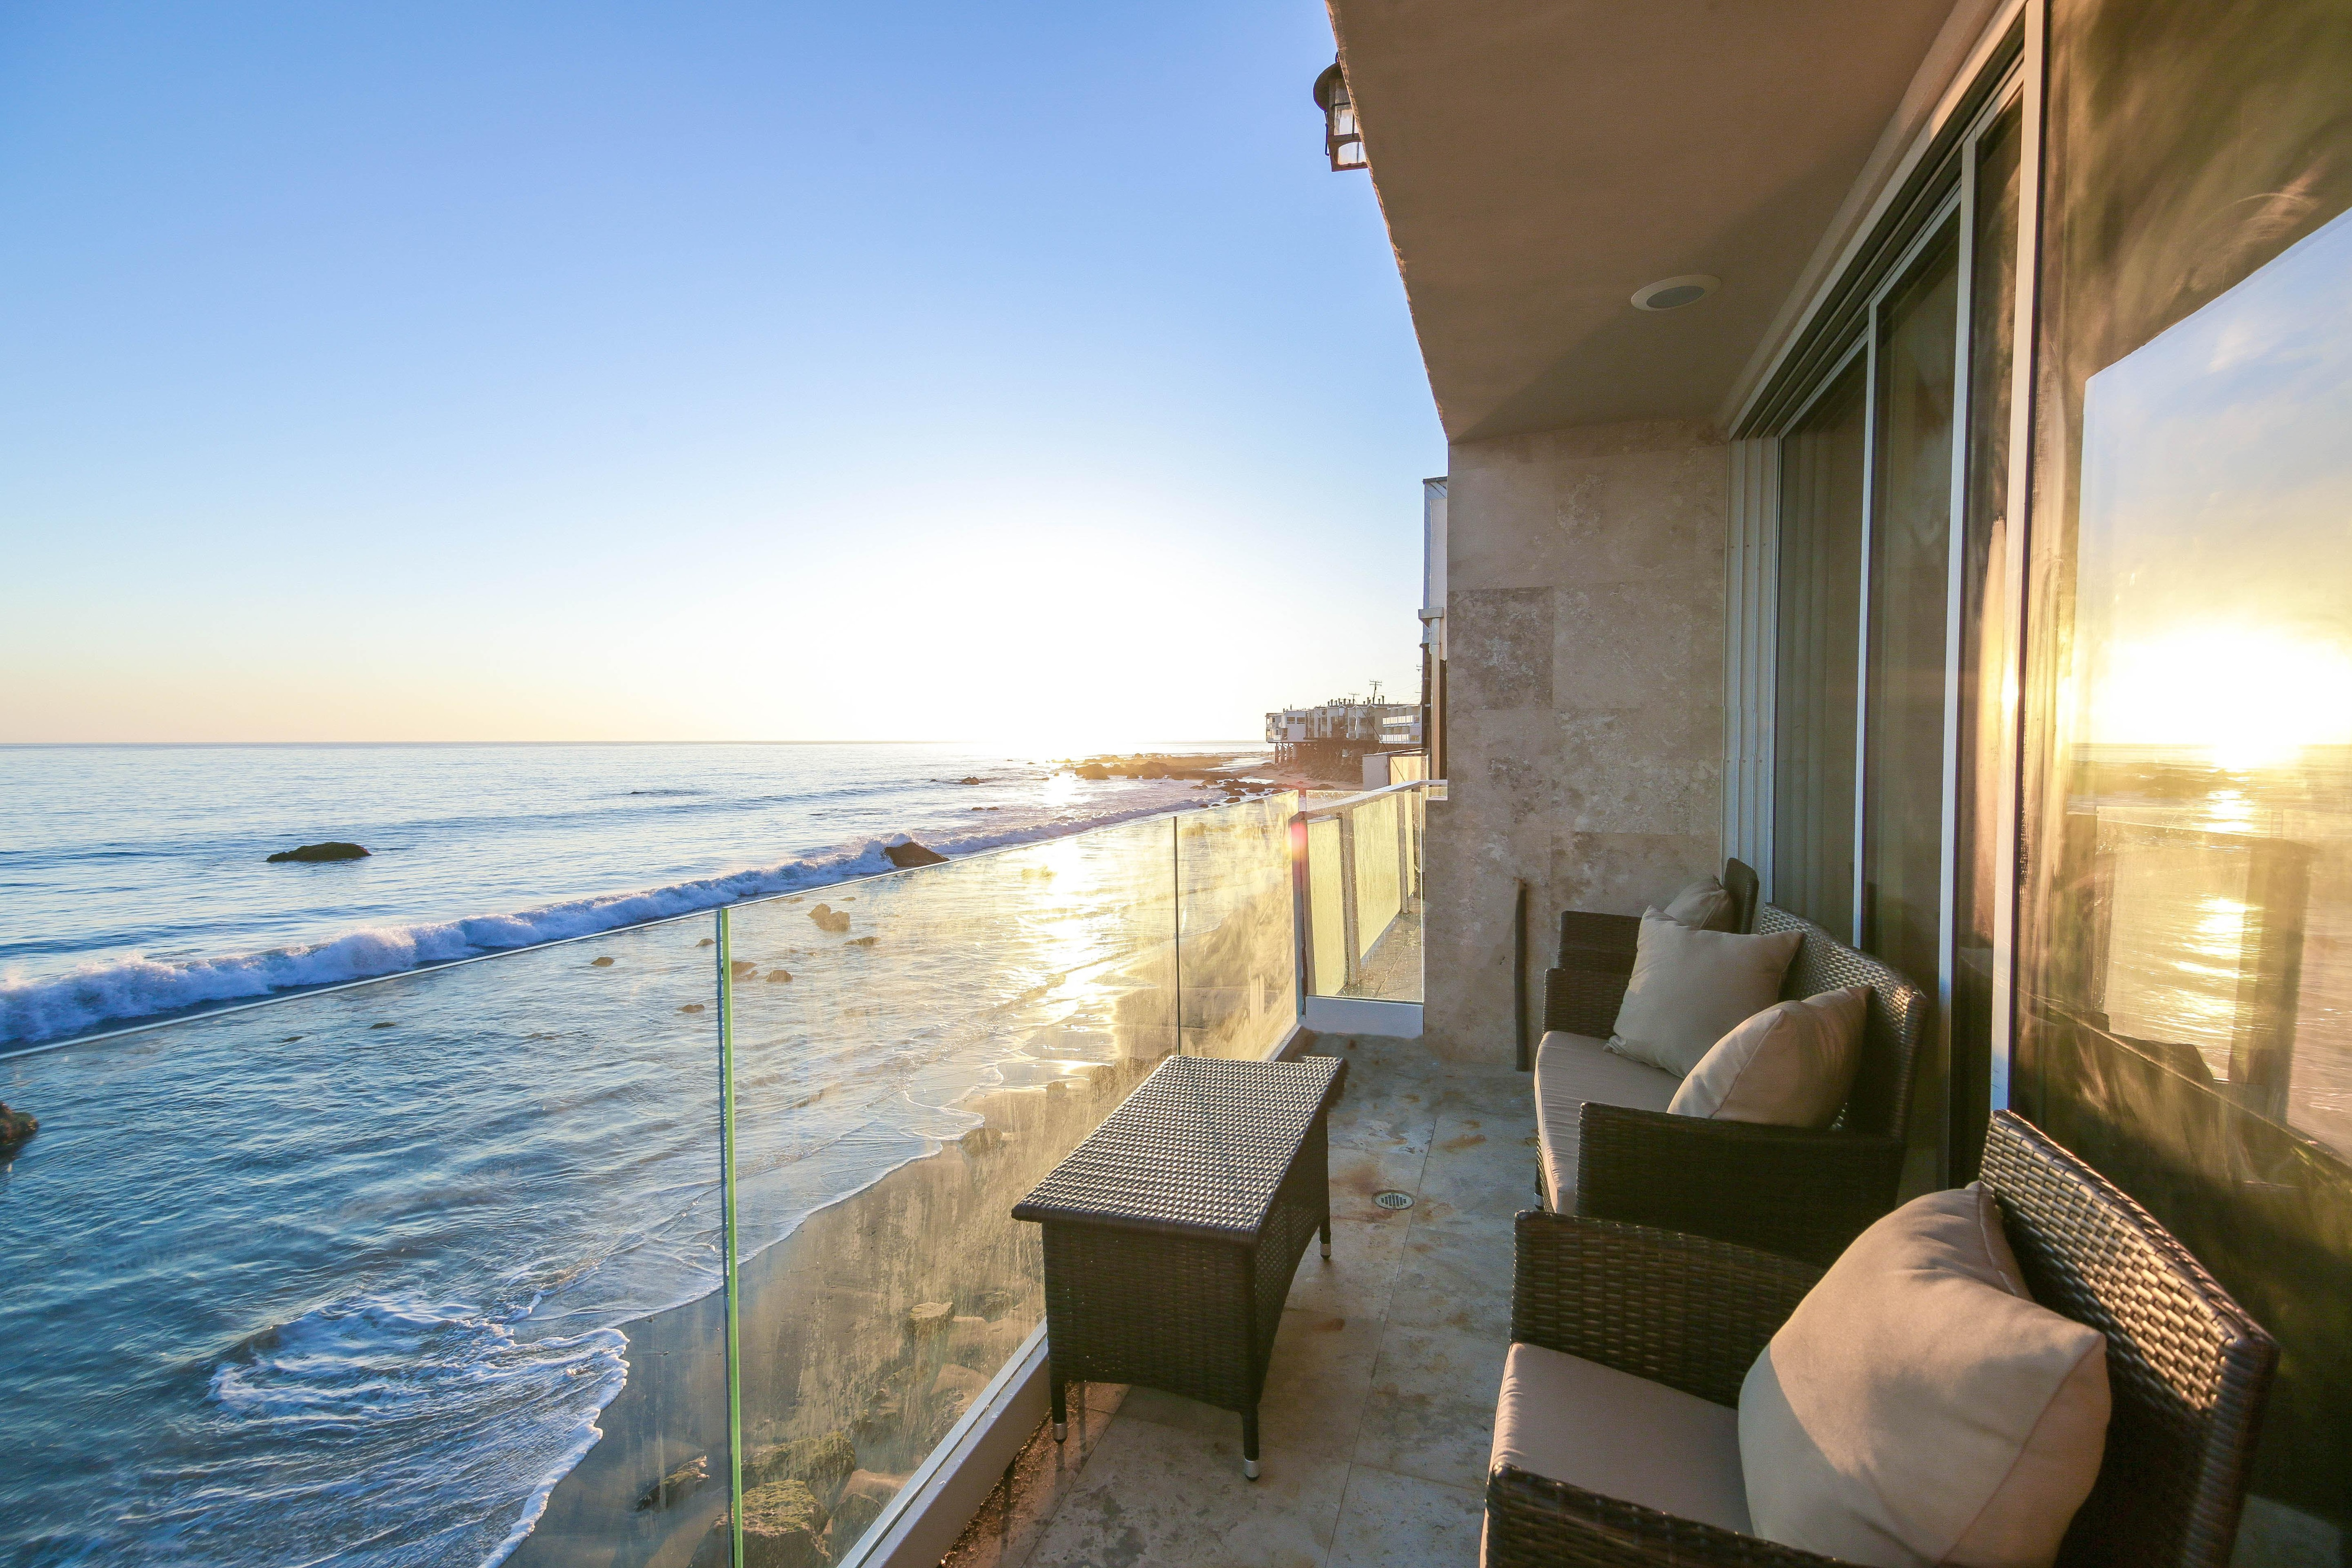 Welcome to Malibu! This beachfront beauty is professionally managed by TurnKey Vacation Rentals.